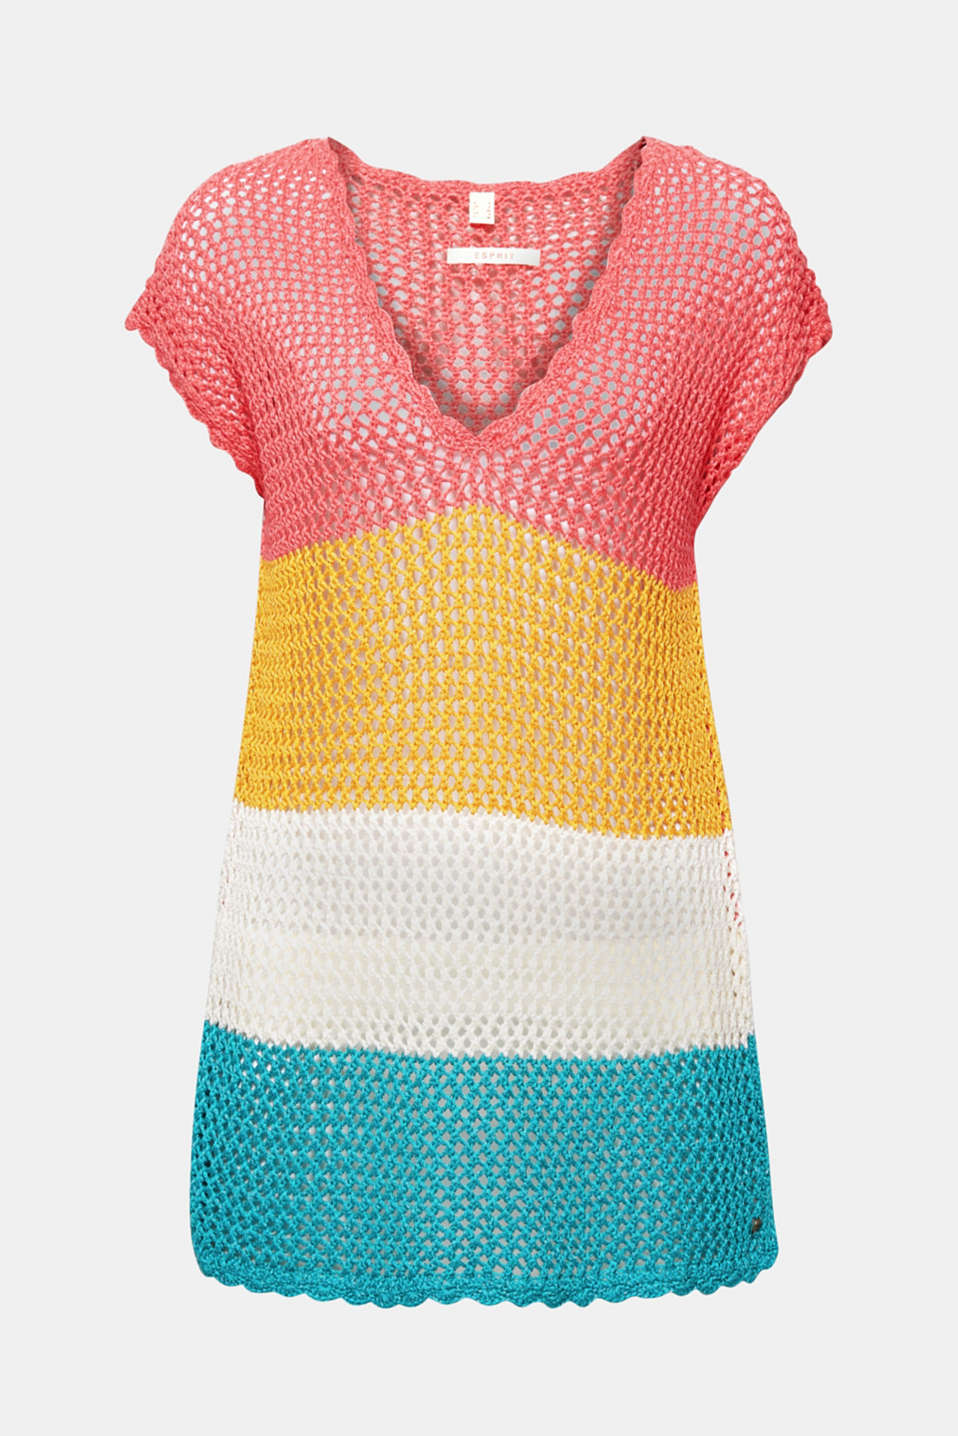 Esprit - Striped, crocheted poncho in a slip-on design